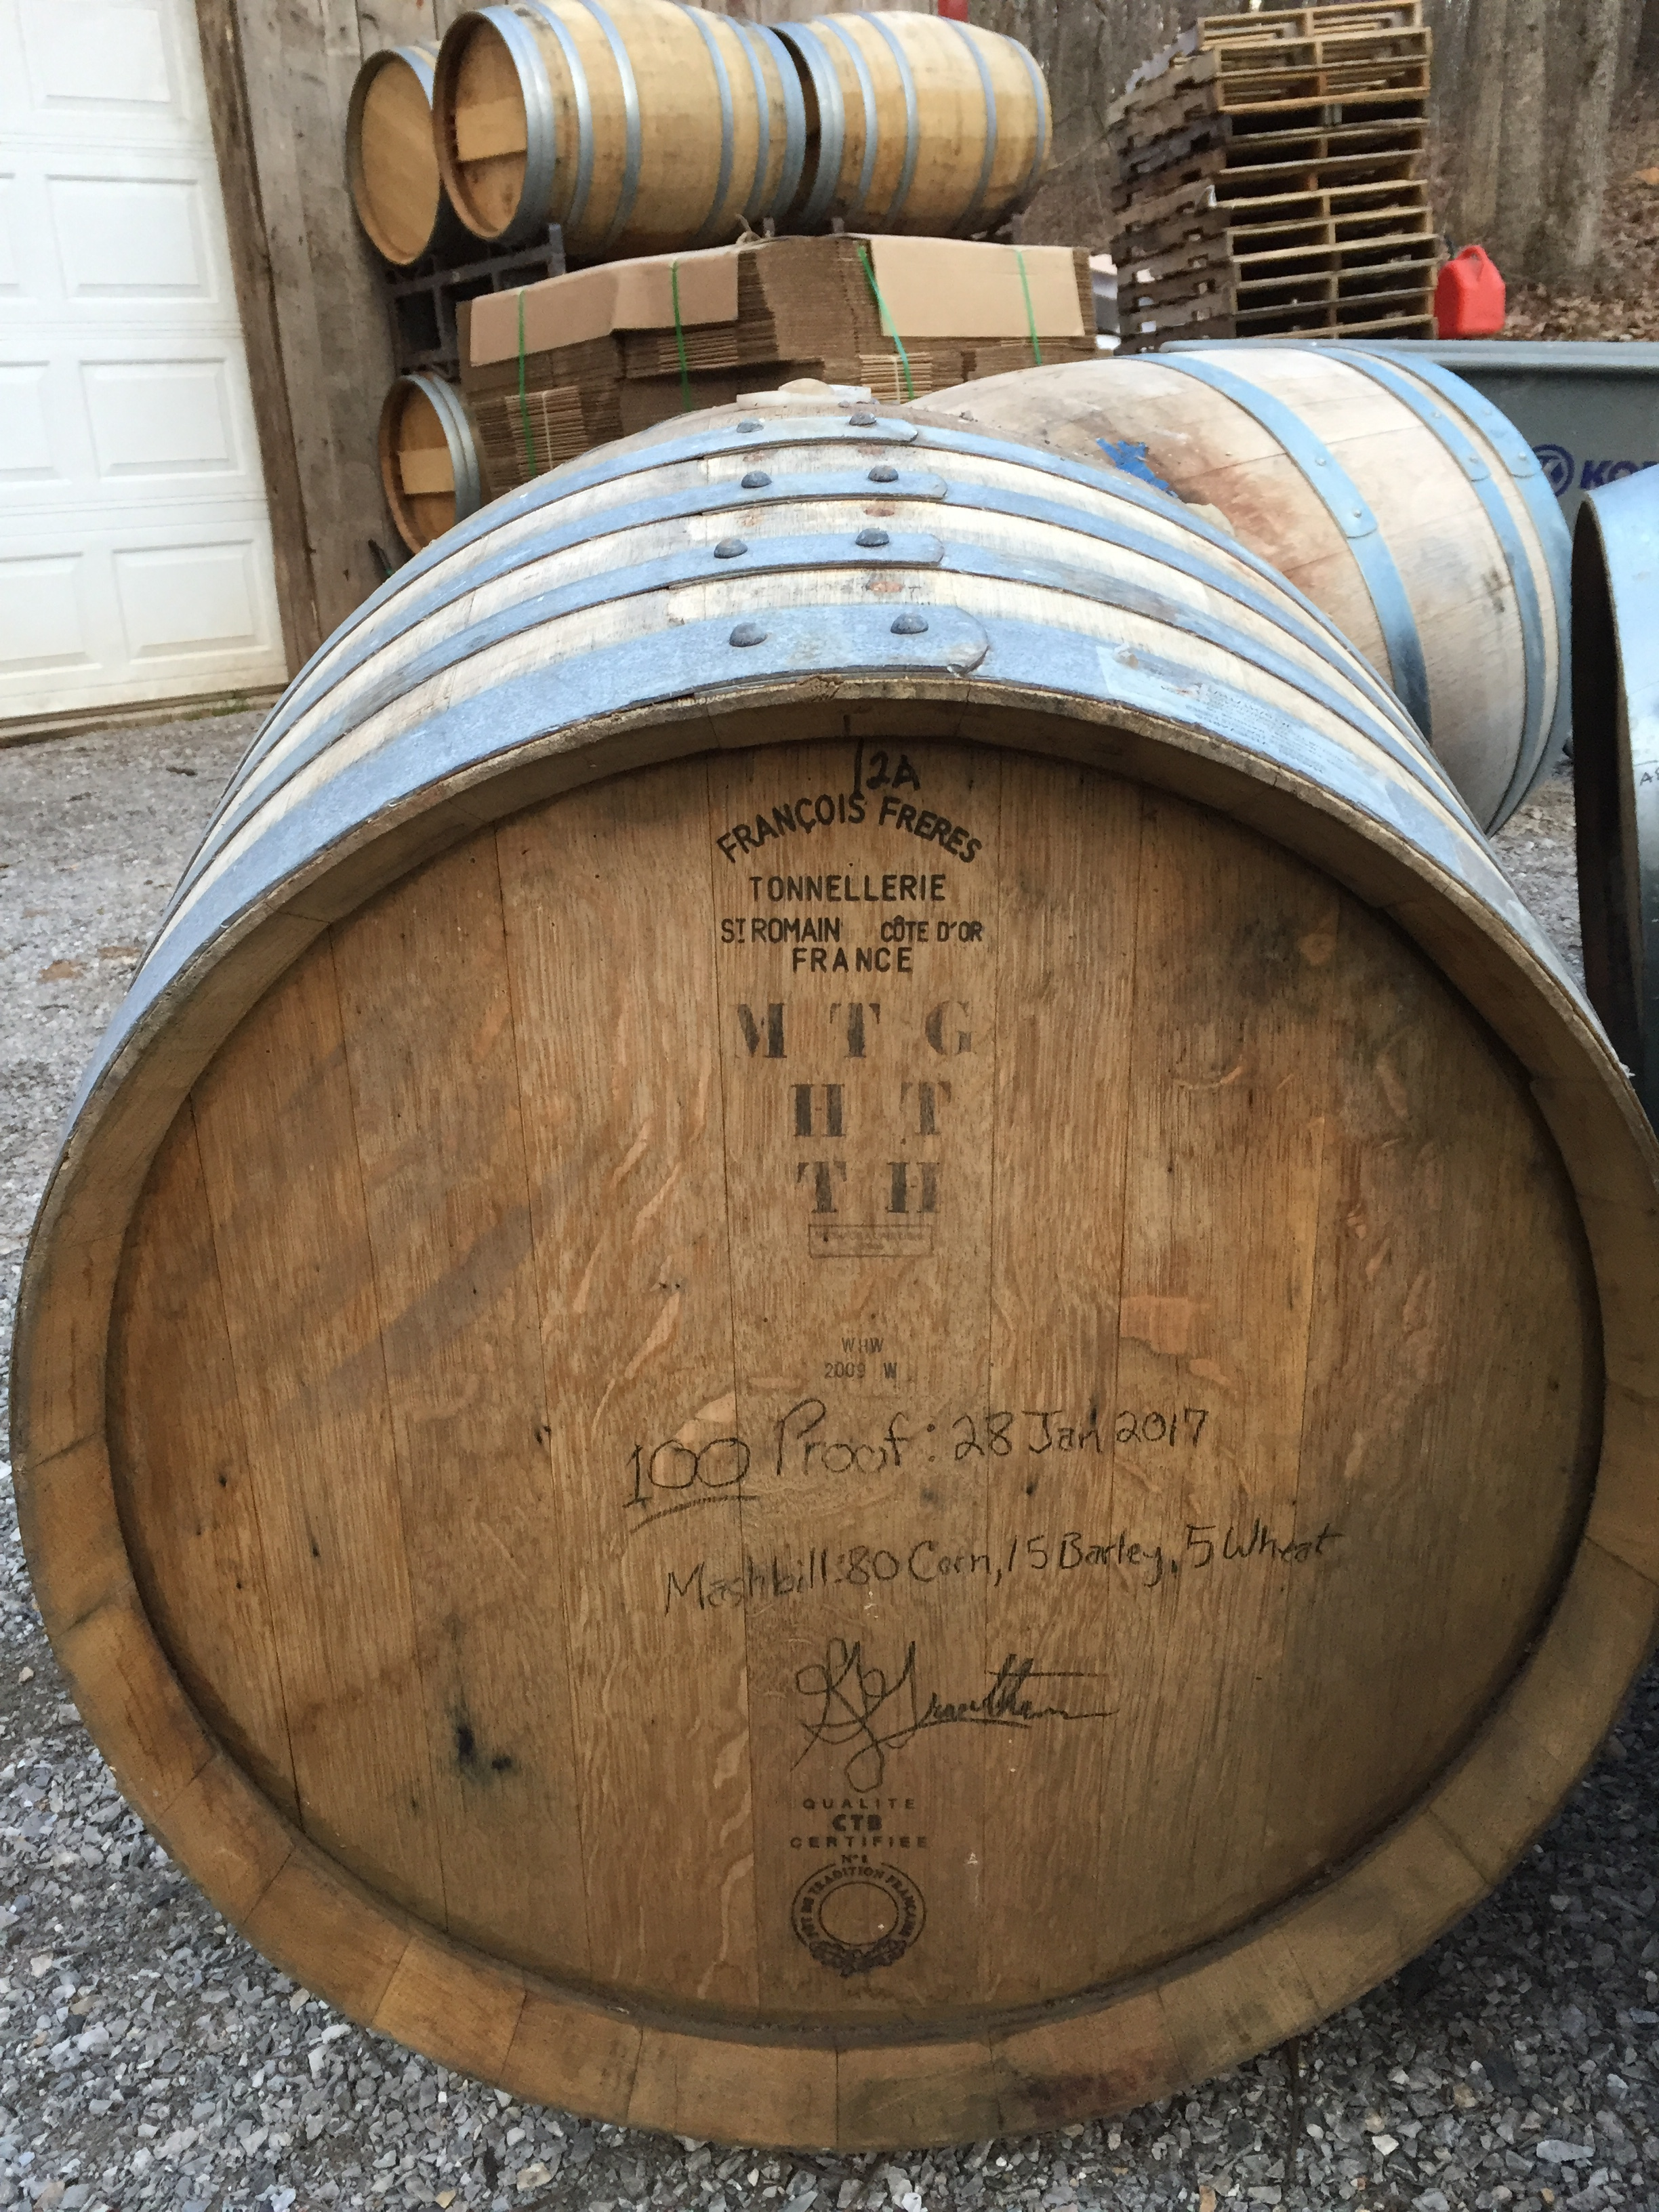 French Oak. It's not just for wine and brandy anymore